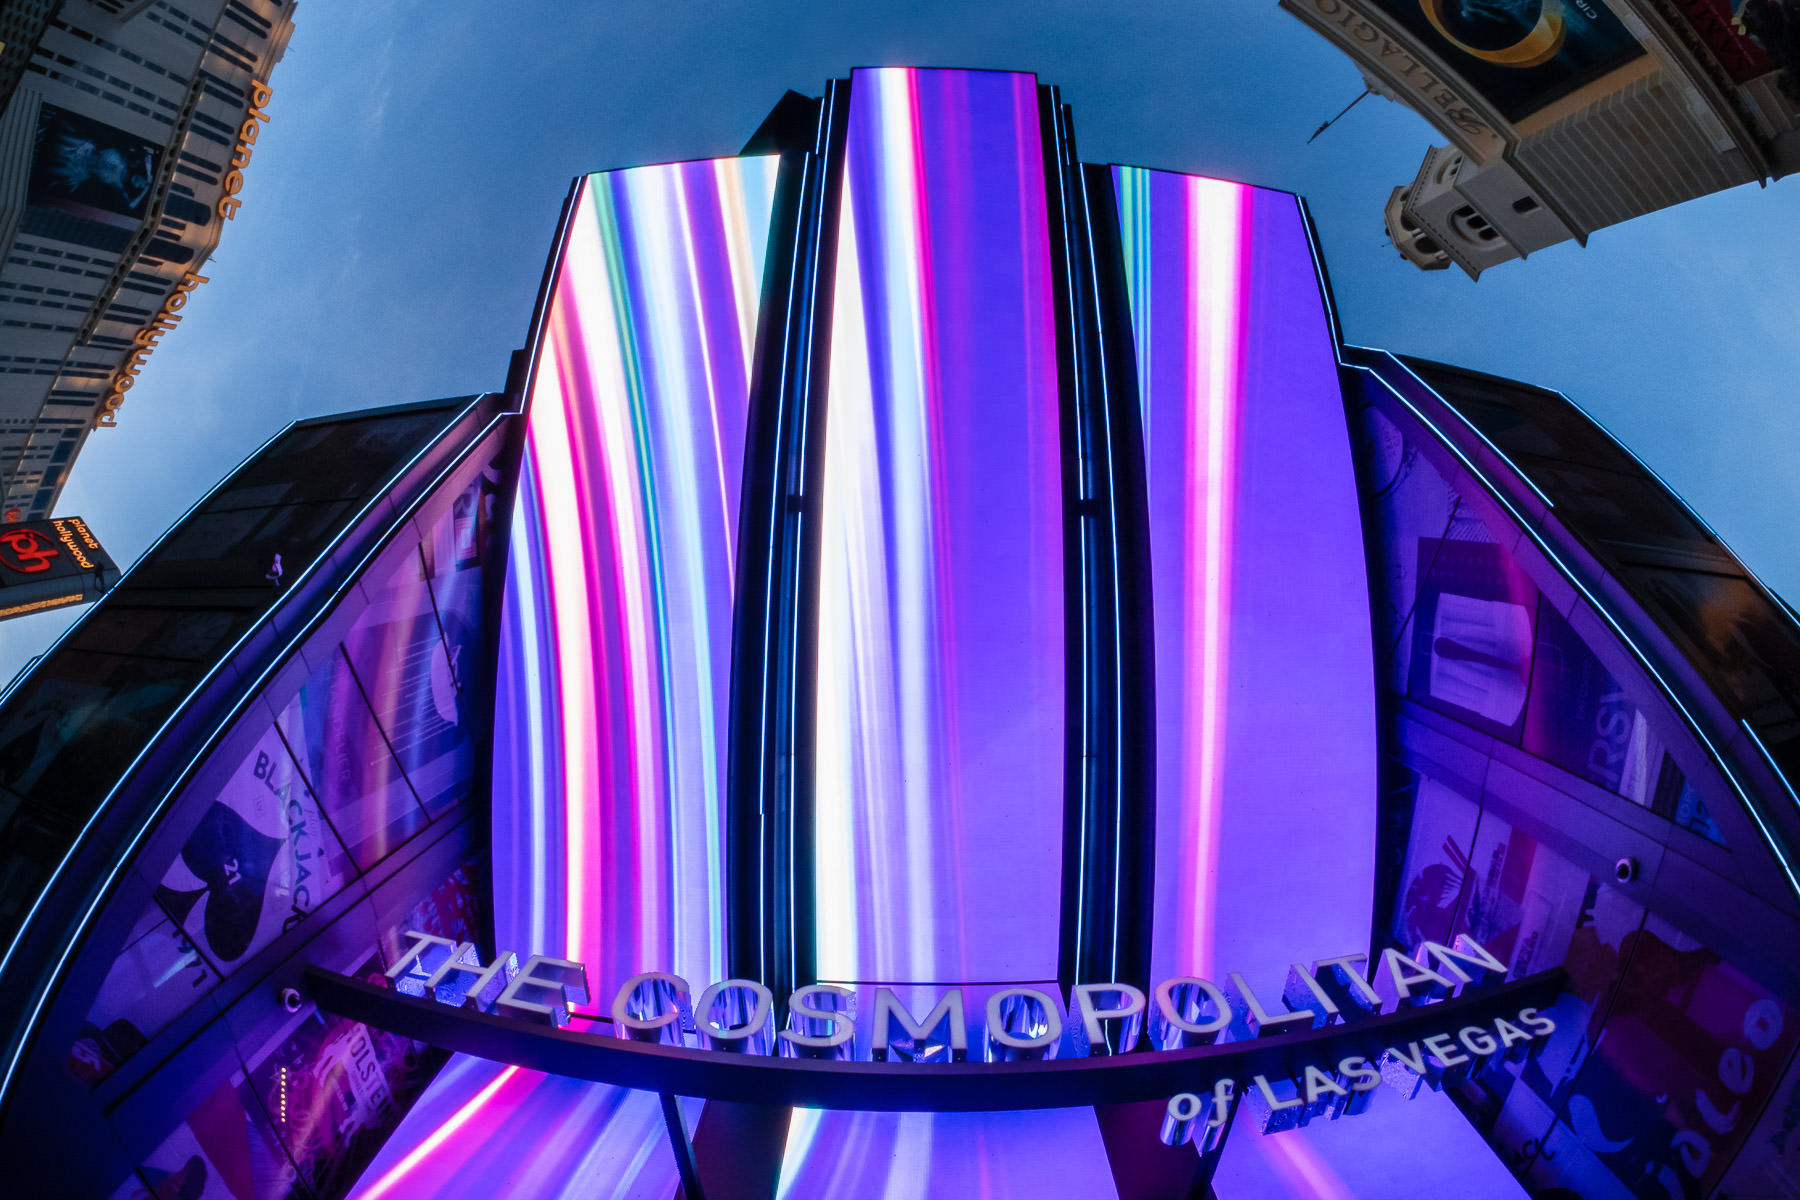 Giant video screens display abstract art above the main entry to the Cosmopolitan of Las Vegas.